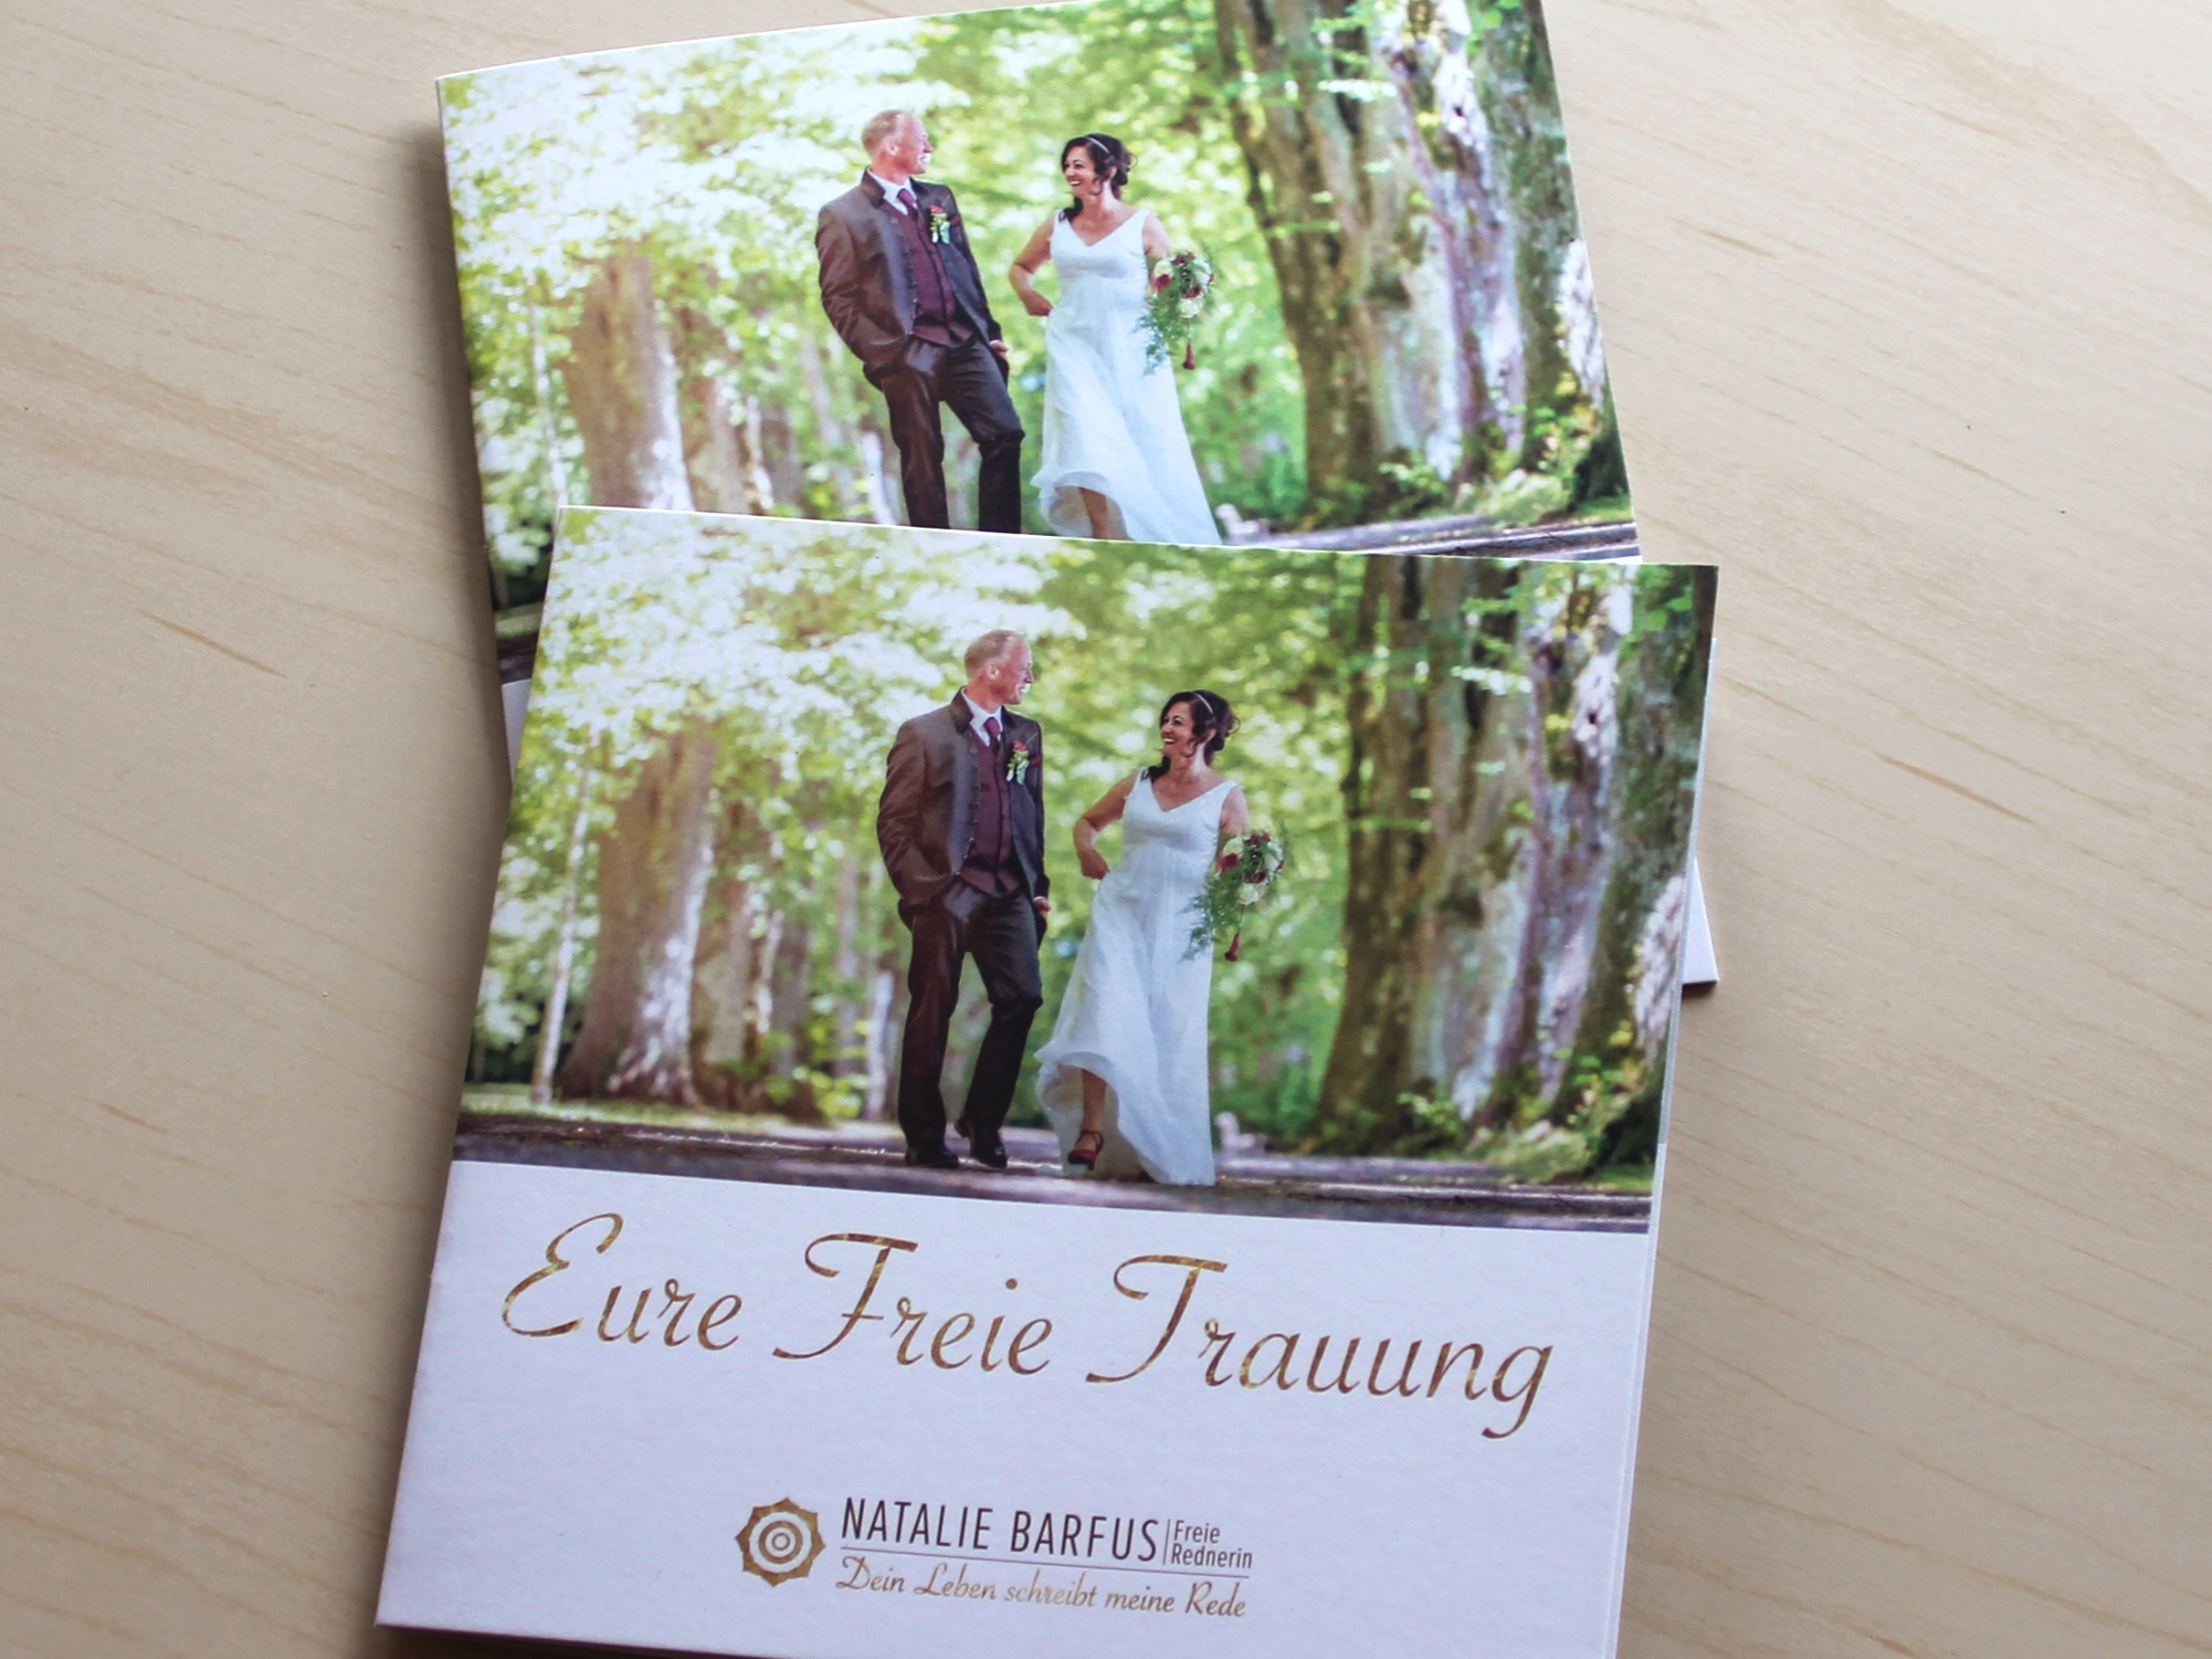 Freie Rednerin, Natalie Barfus, Corporate Design, Best CD, Inspiration Corporate Design, Business Cards Inspirations, let love guide your way,